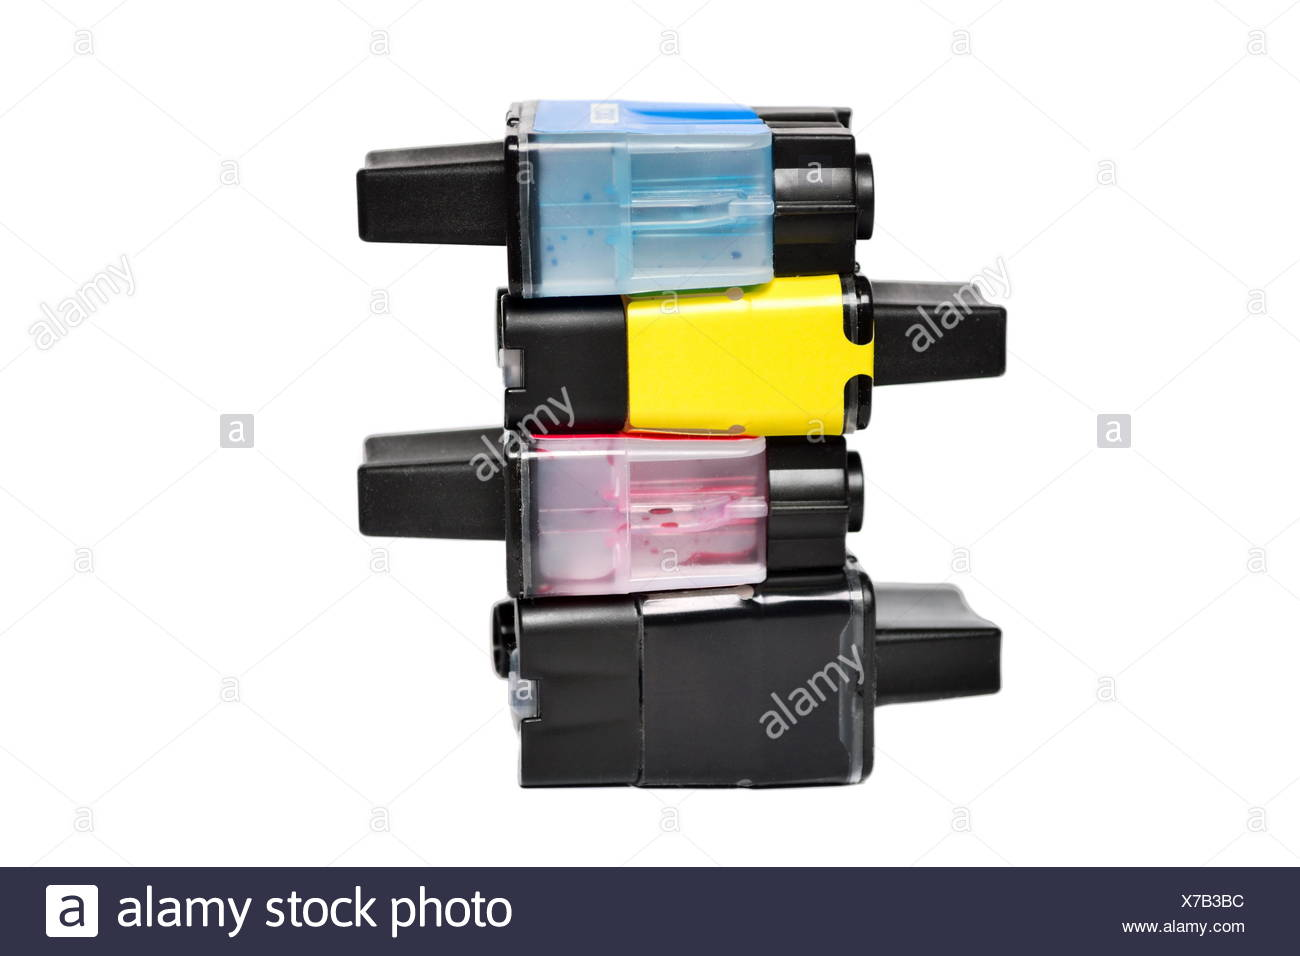 Ink cartridges - Stock Image